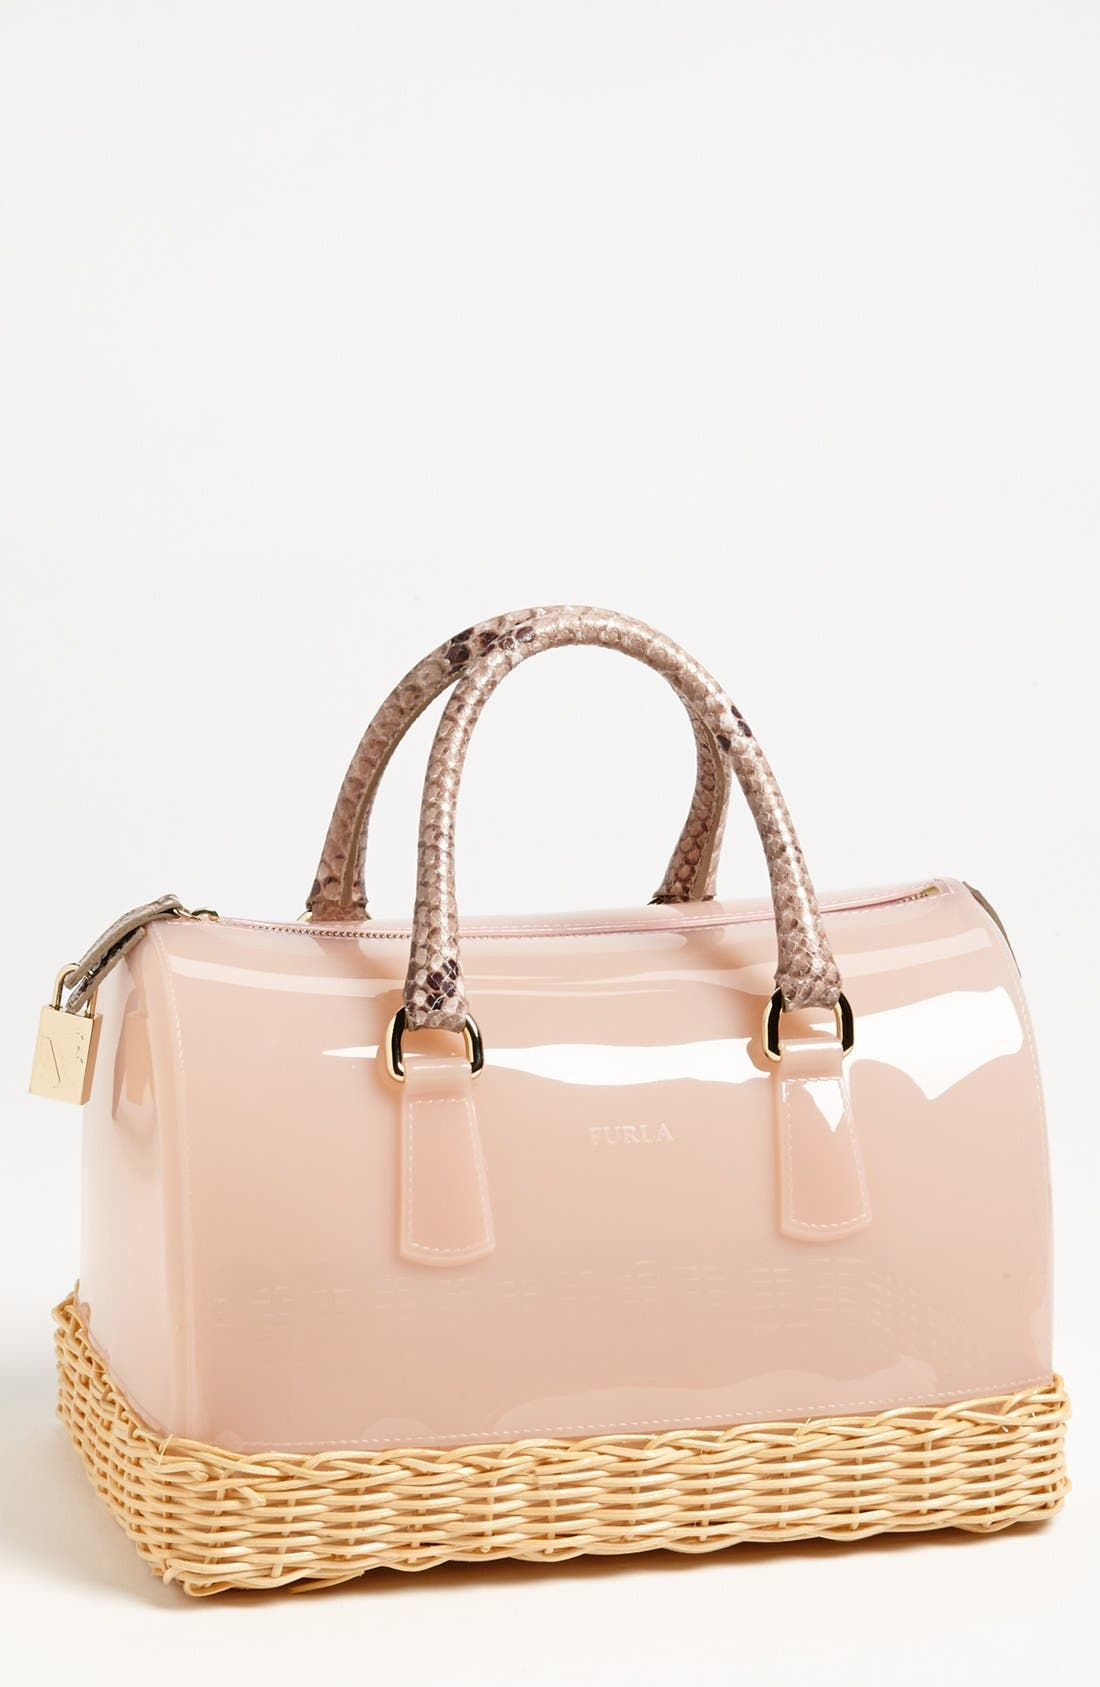 Main Image - Furla 'Candy' Rubber Satchel